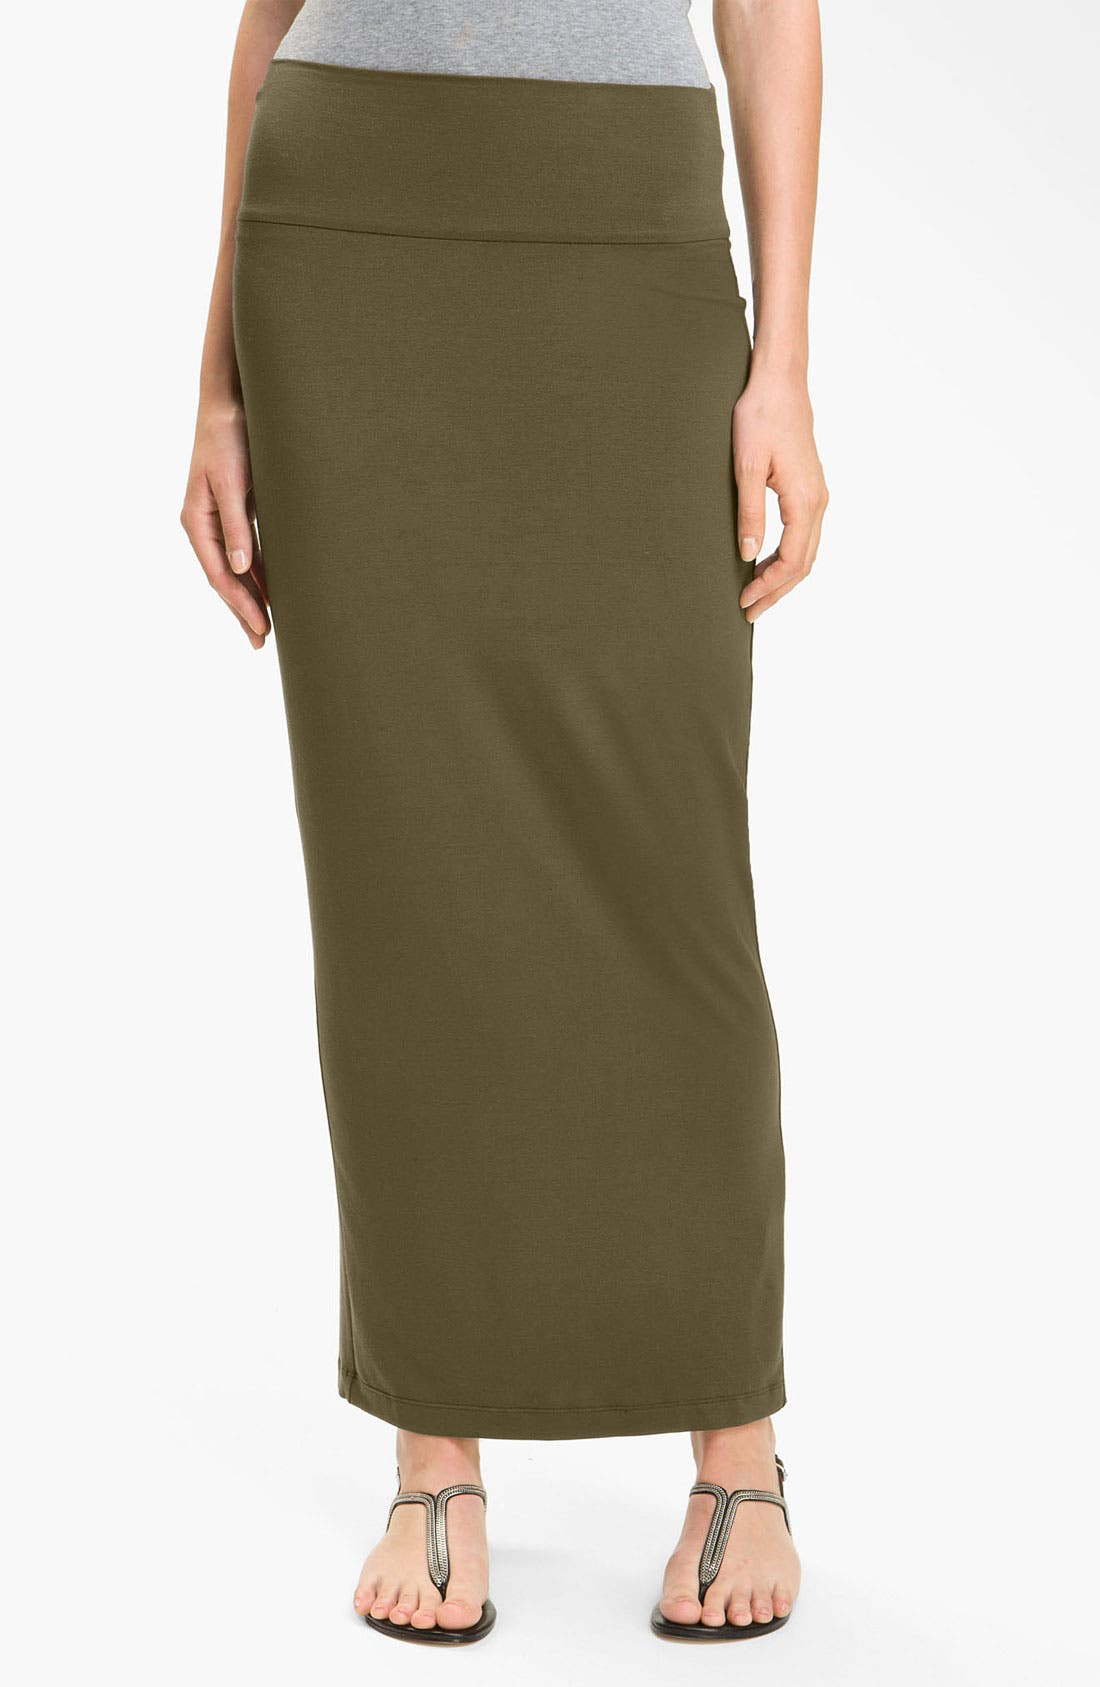 Alternate Image 1 Selected - Eileen Fisher Fold Over Slim Maxi Skirt